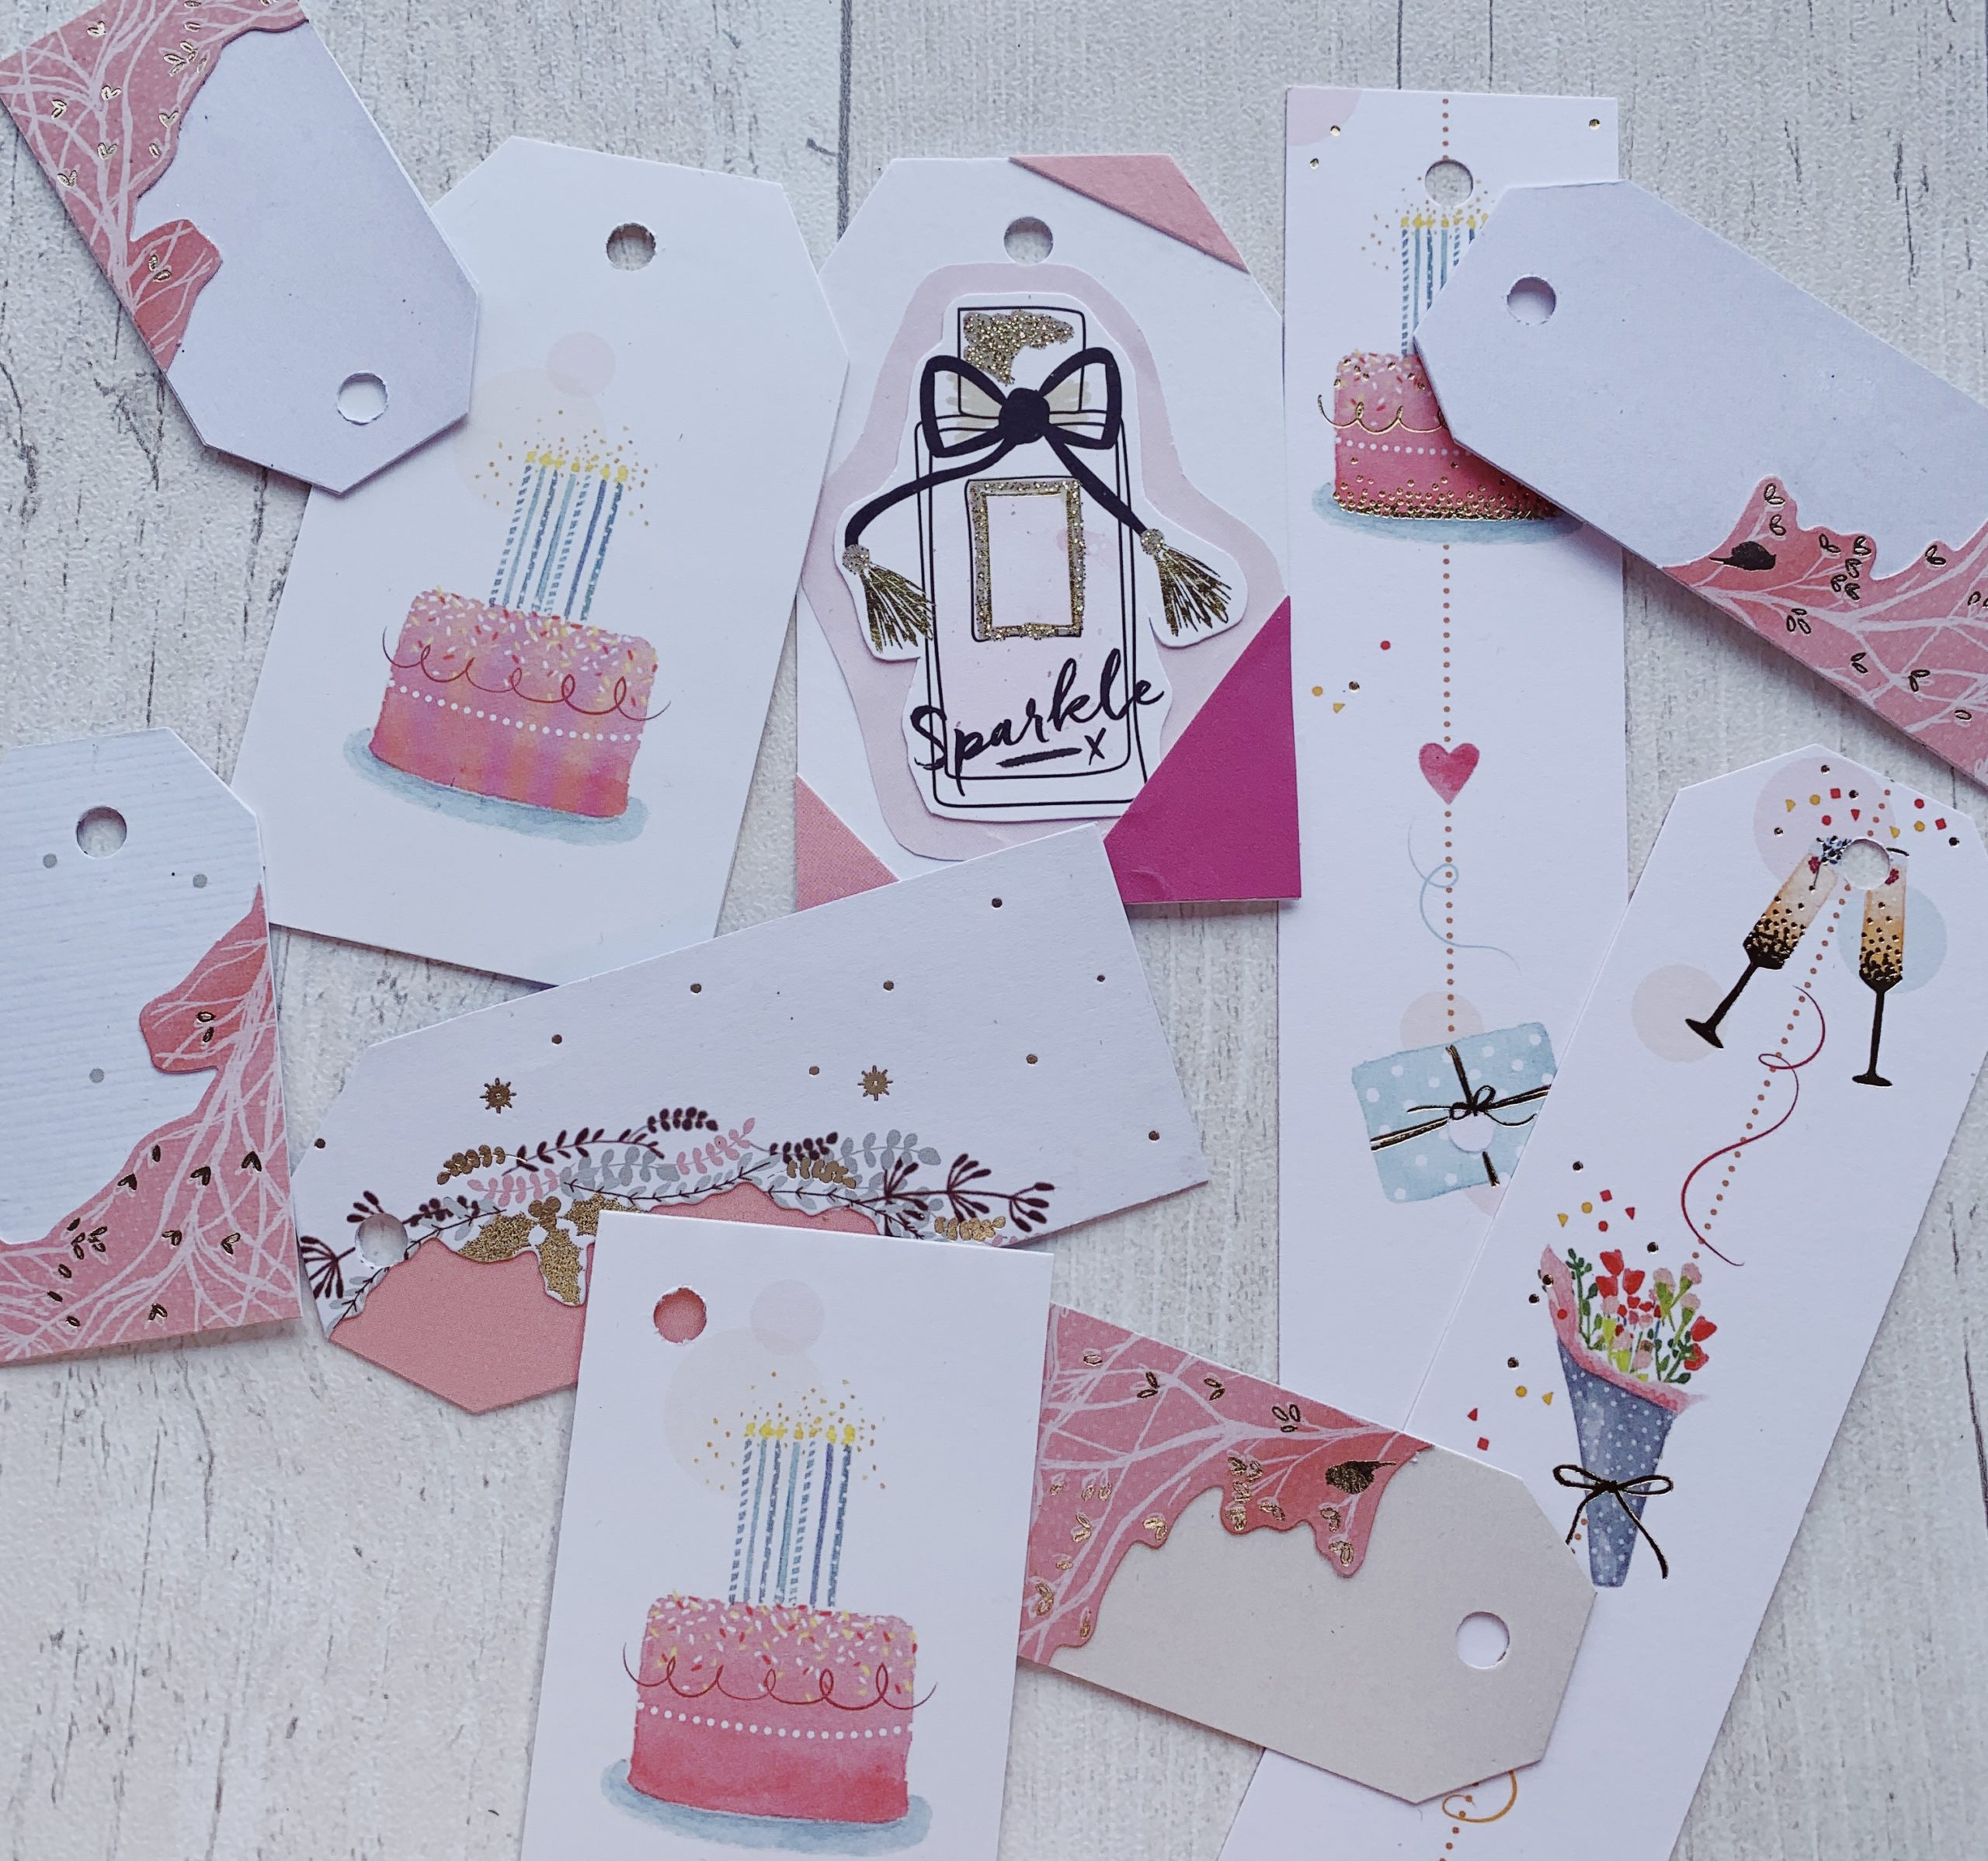 Selection of gift tags with cakes and perfume bottles